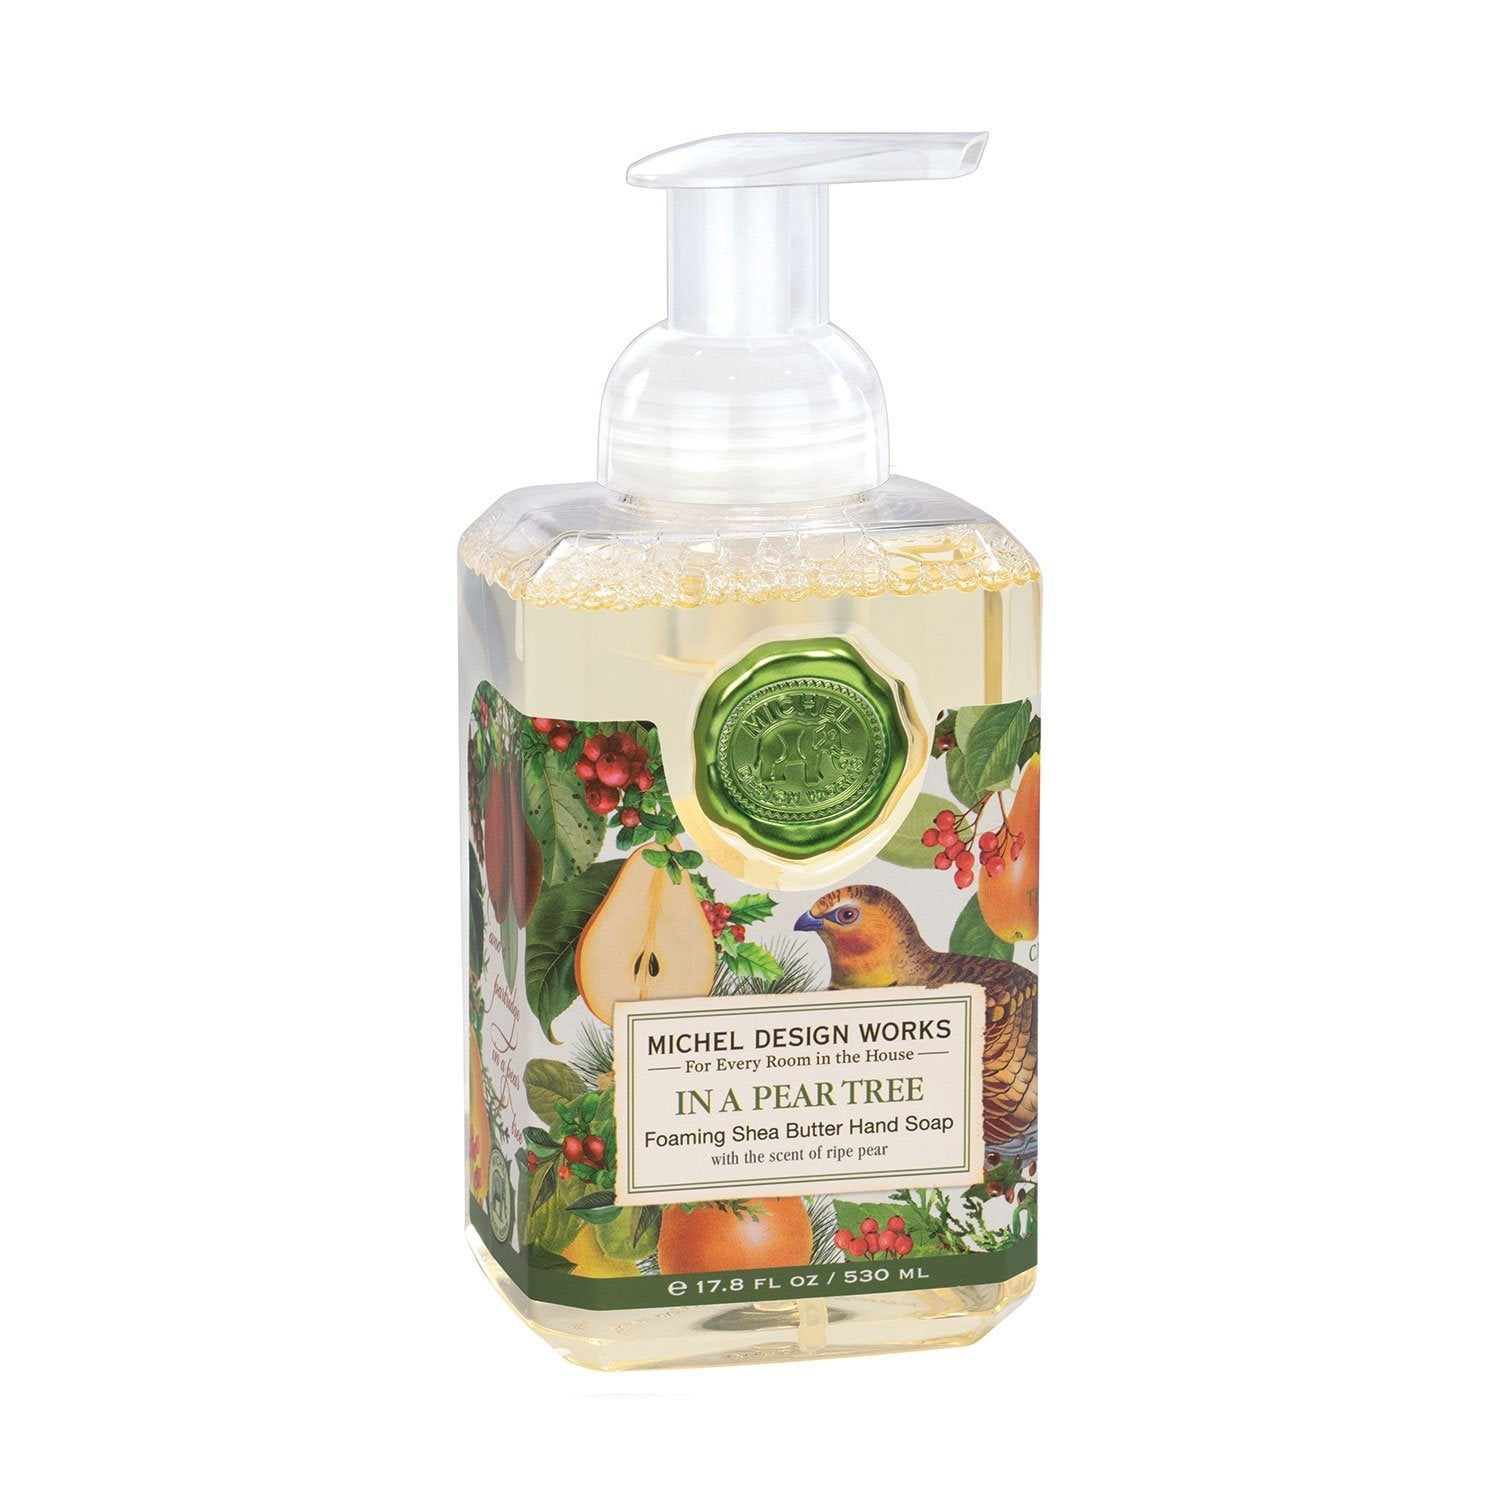 Michel Design Works Foaming Soap: In A Pear Tree